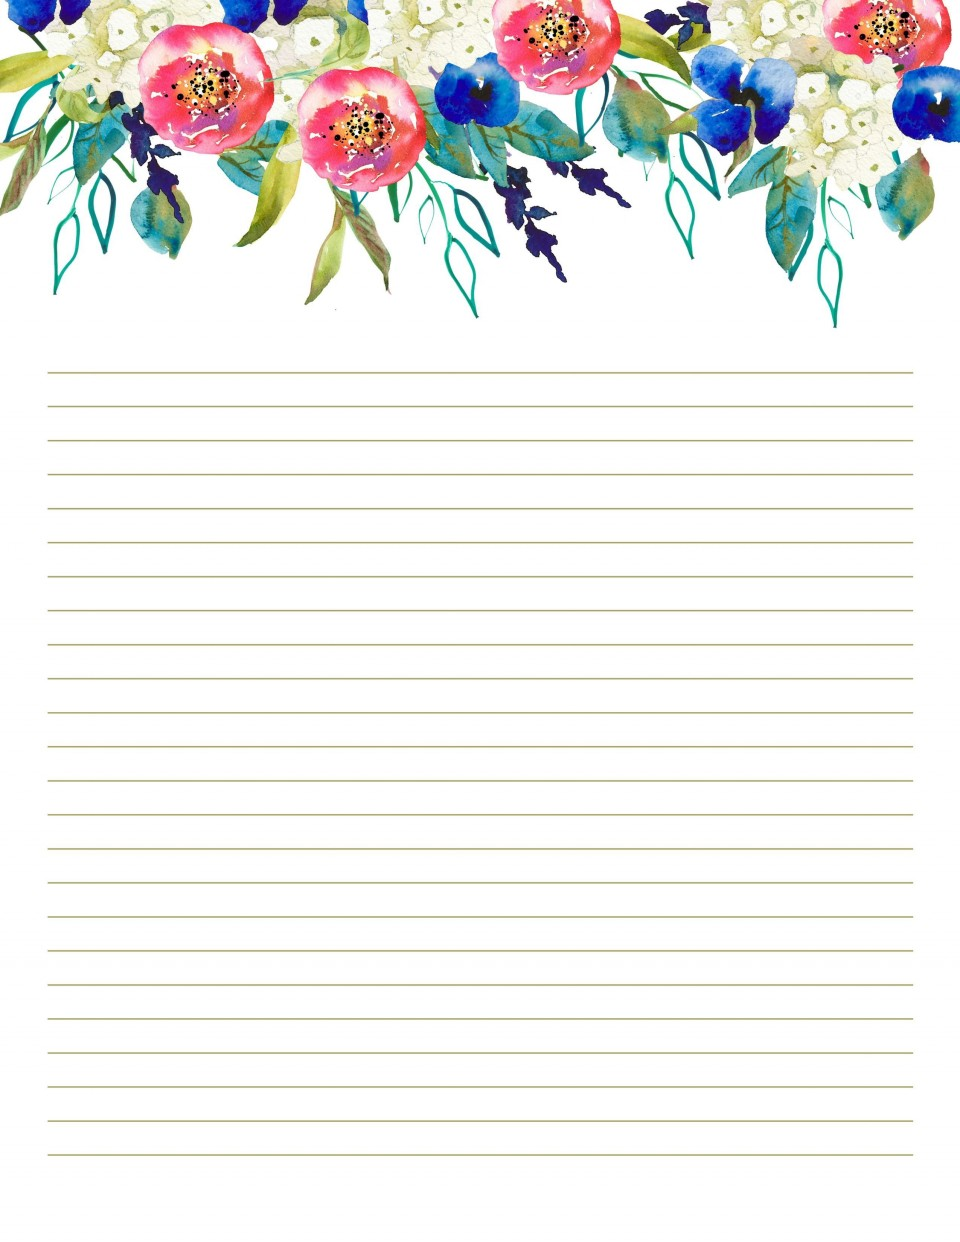 007 Top Free Printable Stationery Paper Template Design 960